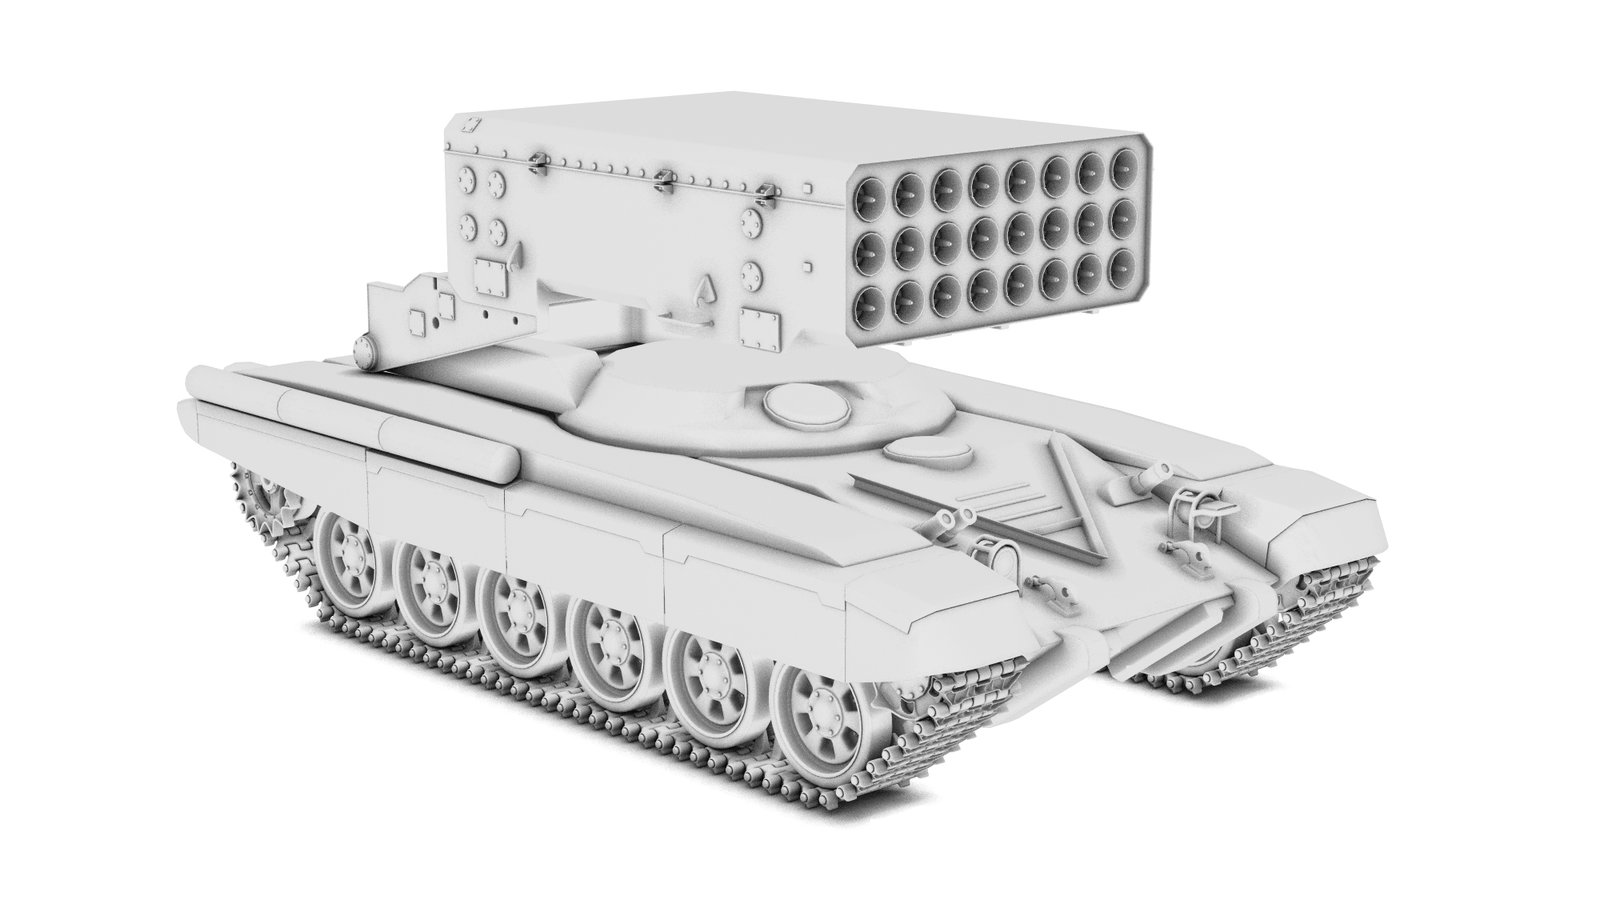 TOS-1-AO-frontside - smooth.jpg